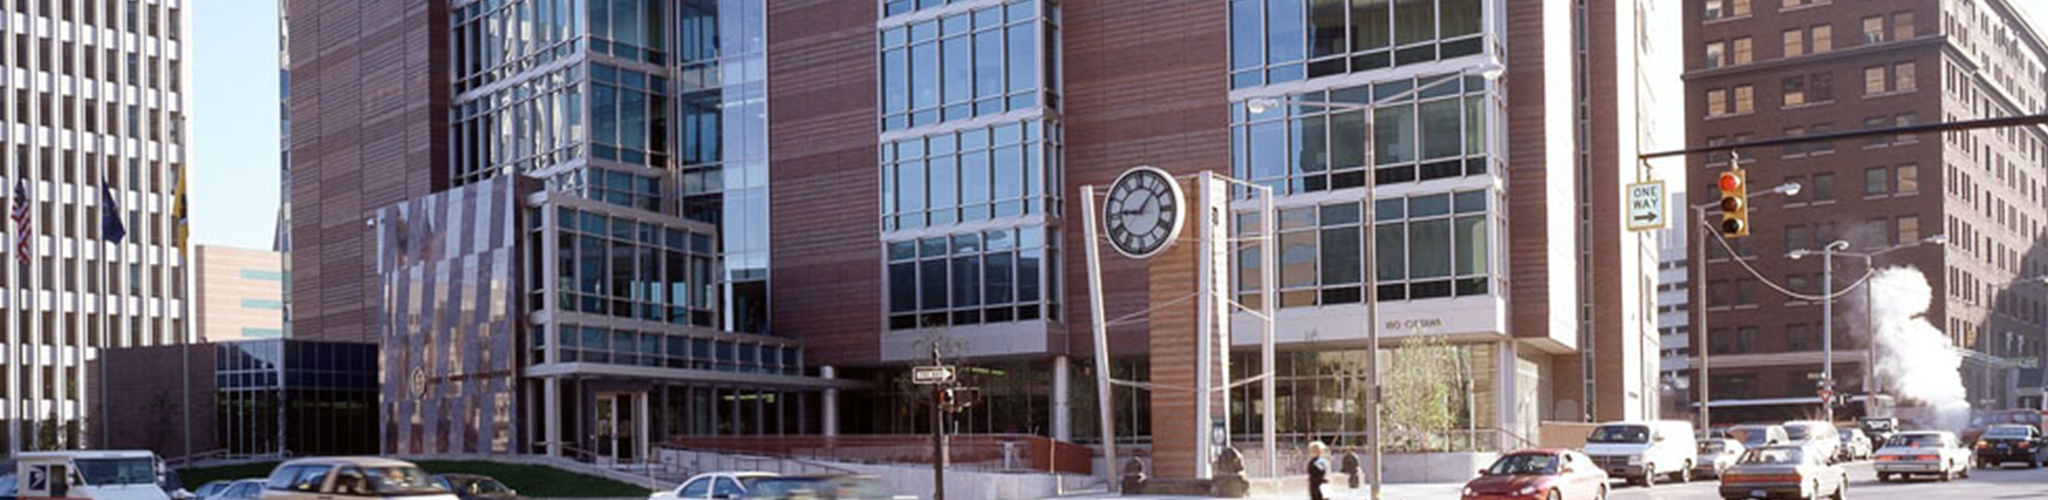 Page Banner Images Courthouse